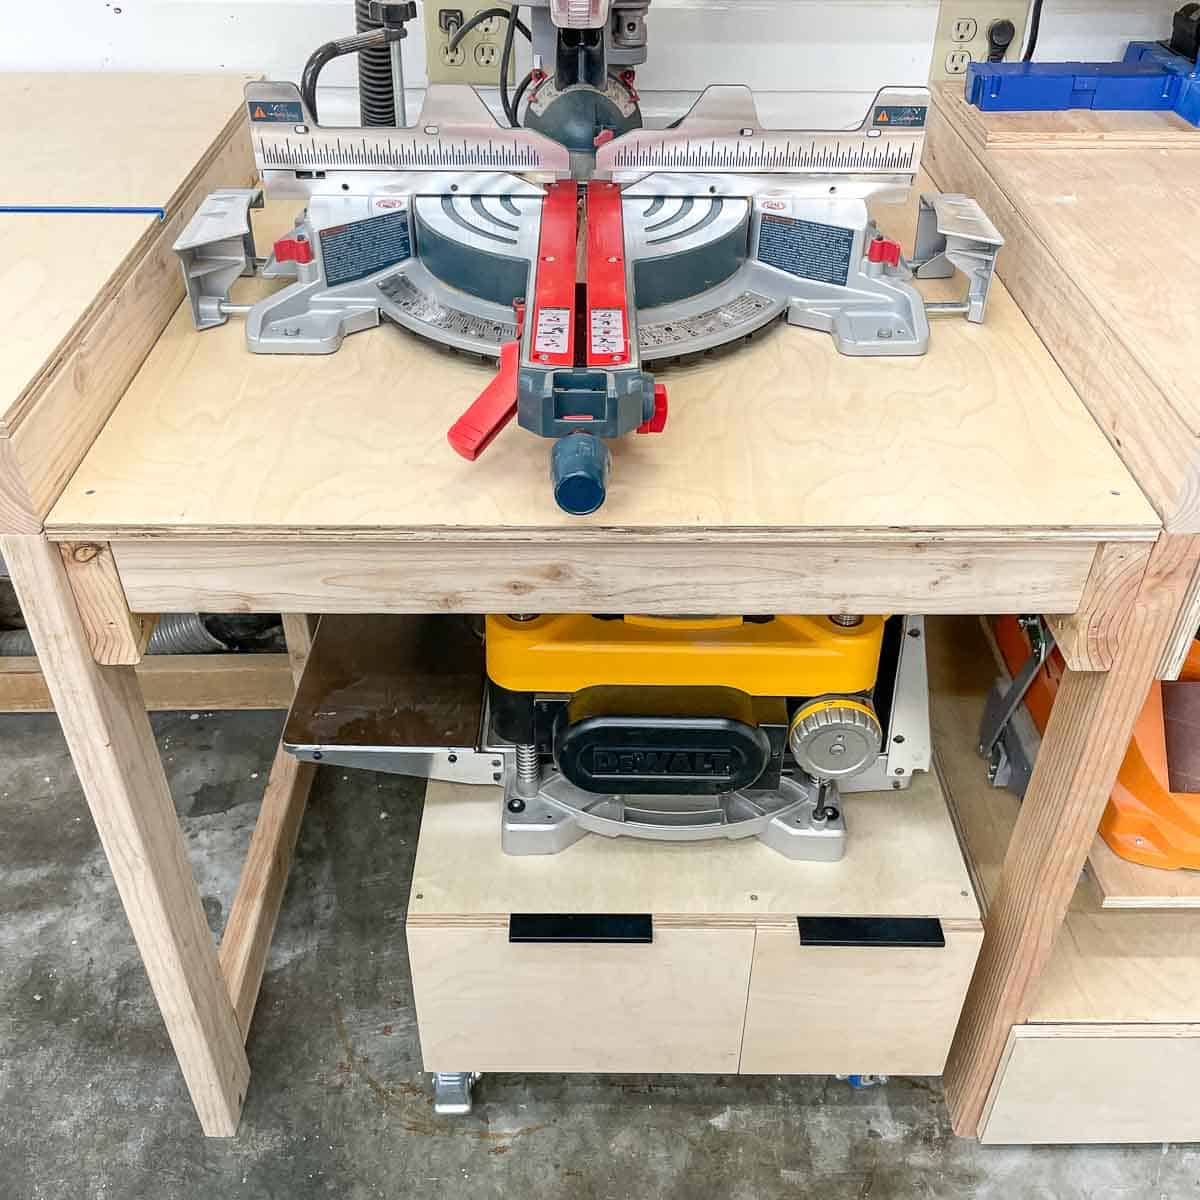 DIY planer stand with drawers under miter saw station